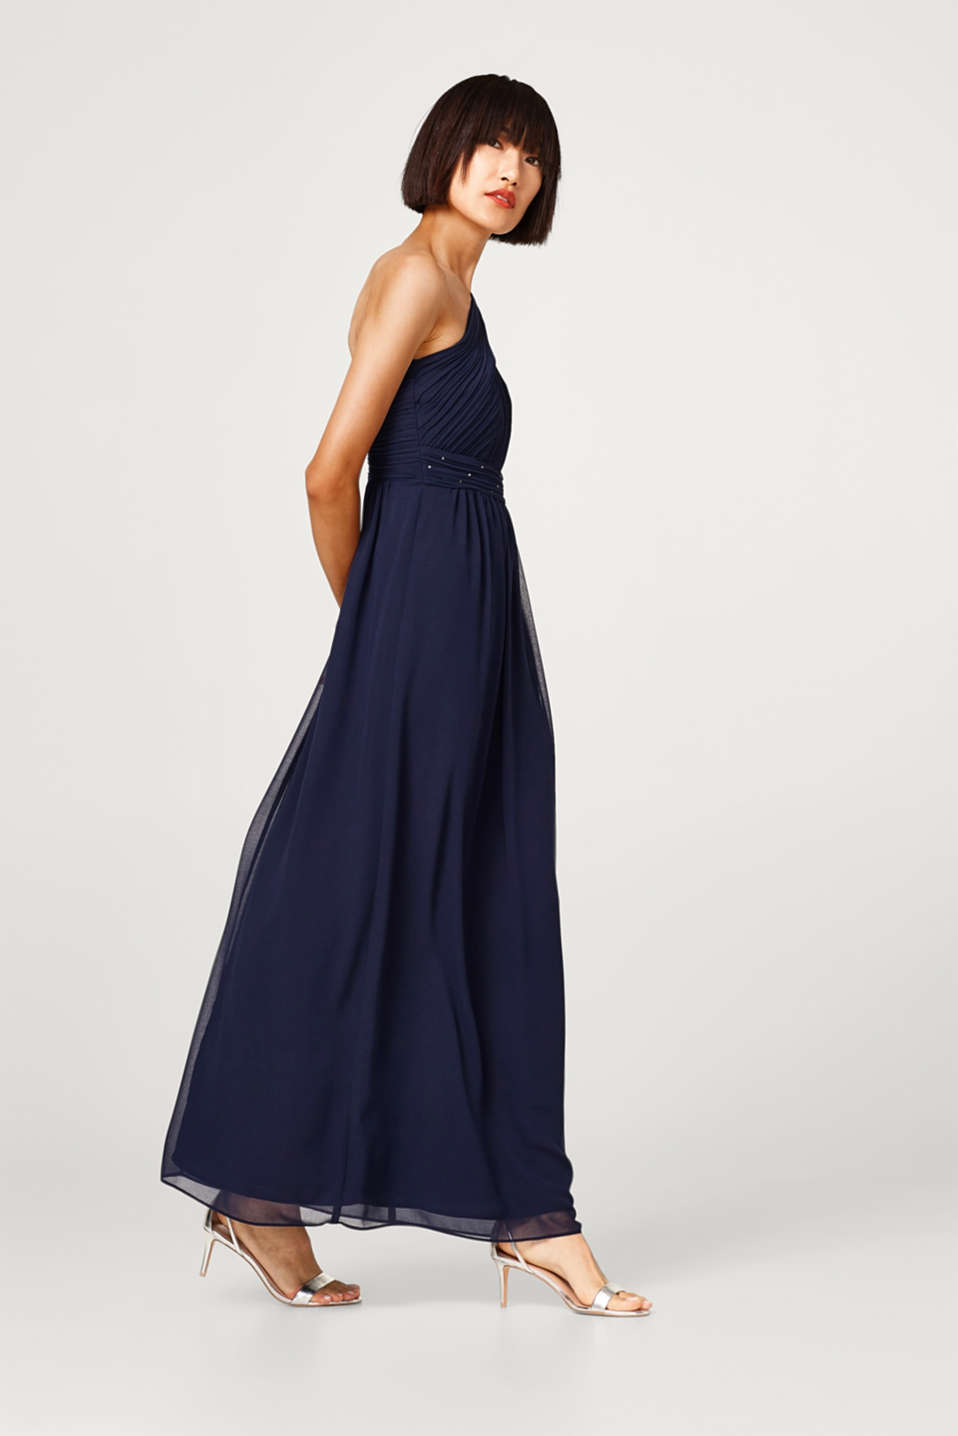 One shoulder dress in chiffon + rhinestones